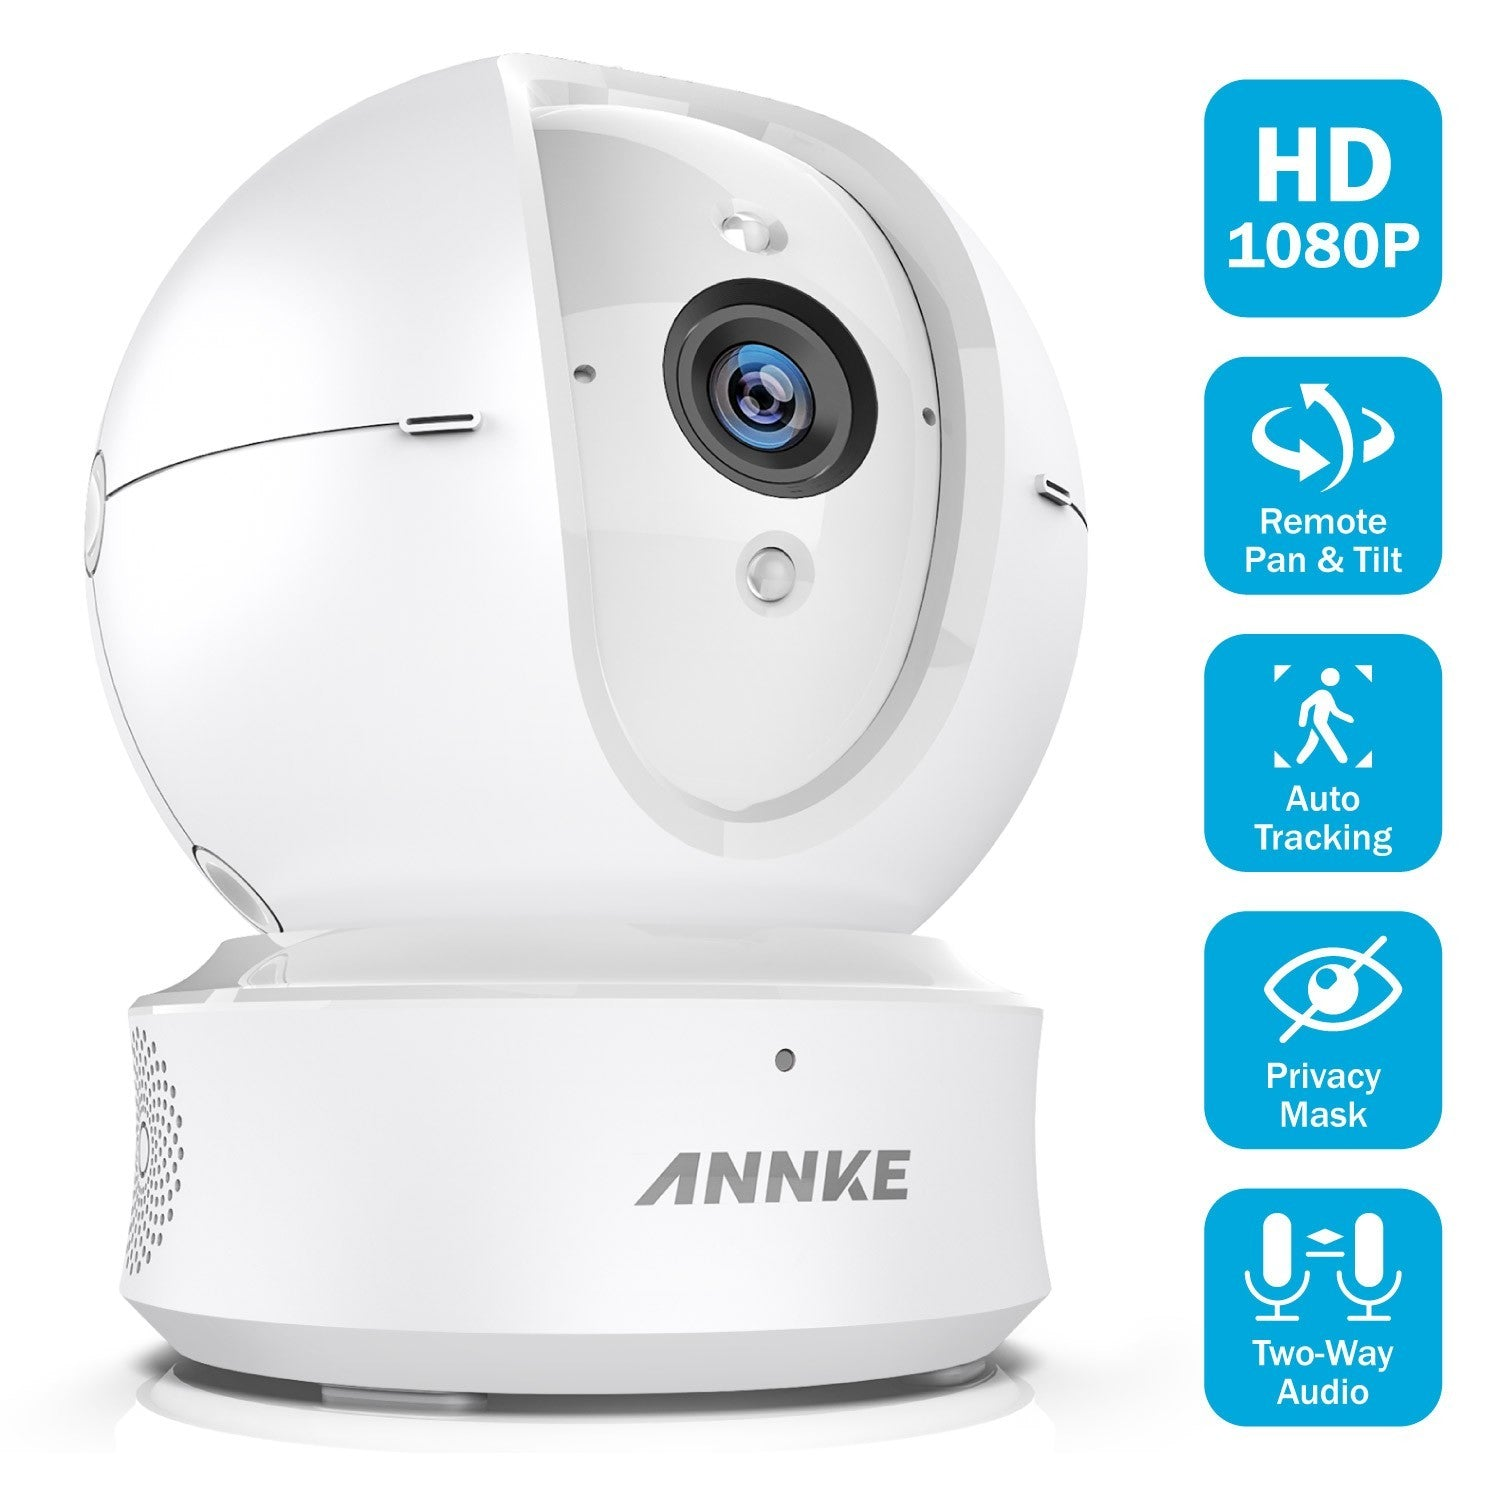 ANNKE Wifi IP Camera, Nova Orion 1080P HD Pan/Tilt Home Security Camera (Factory Refurbished)